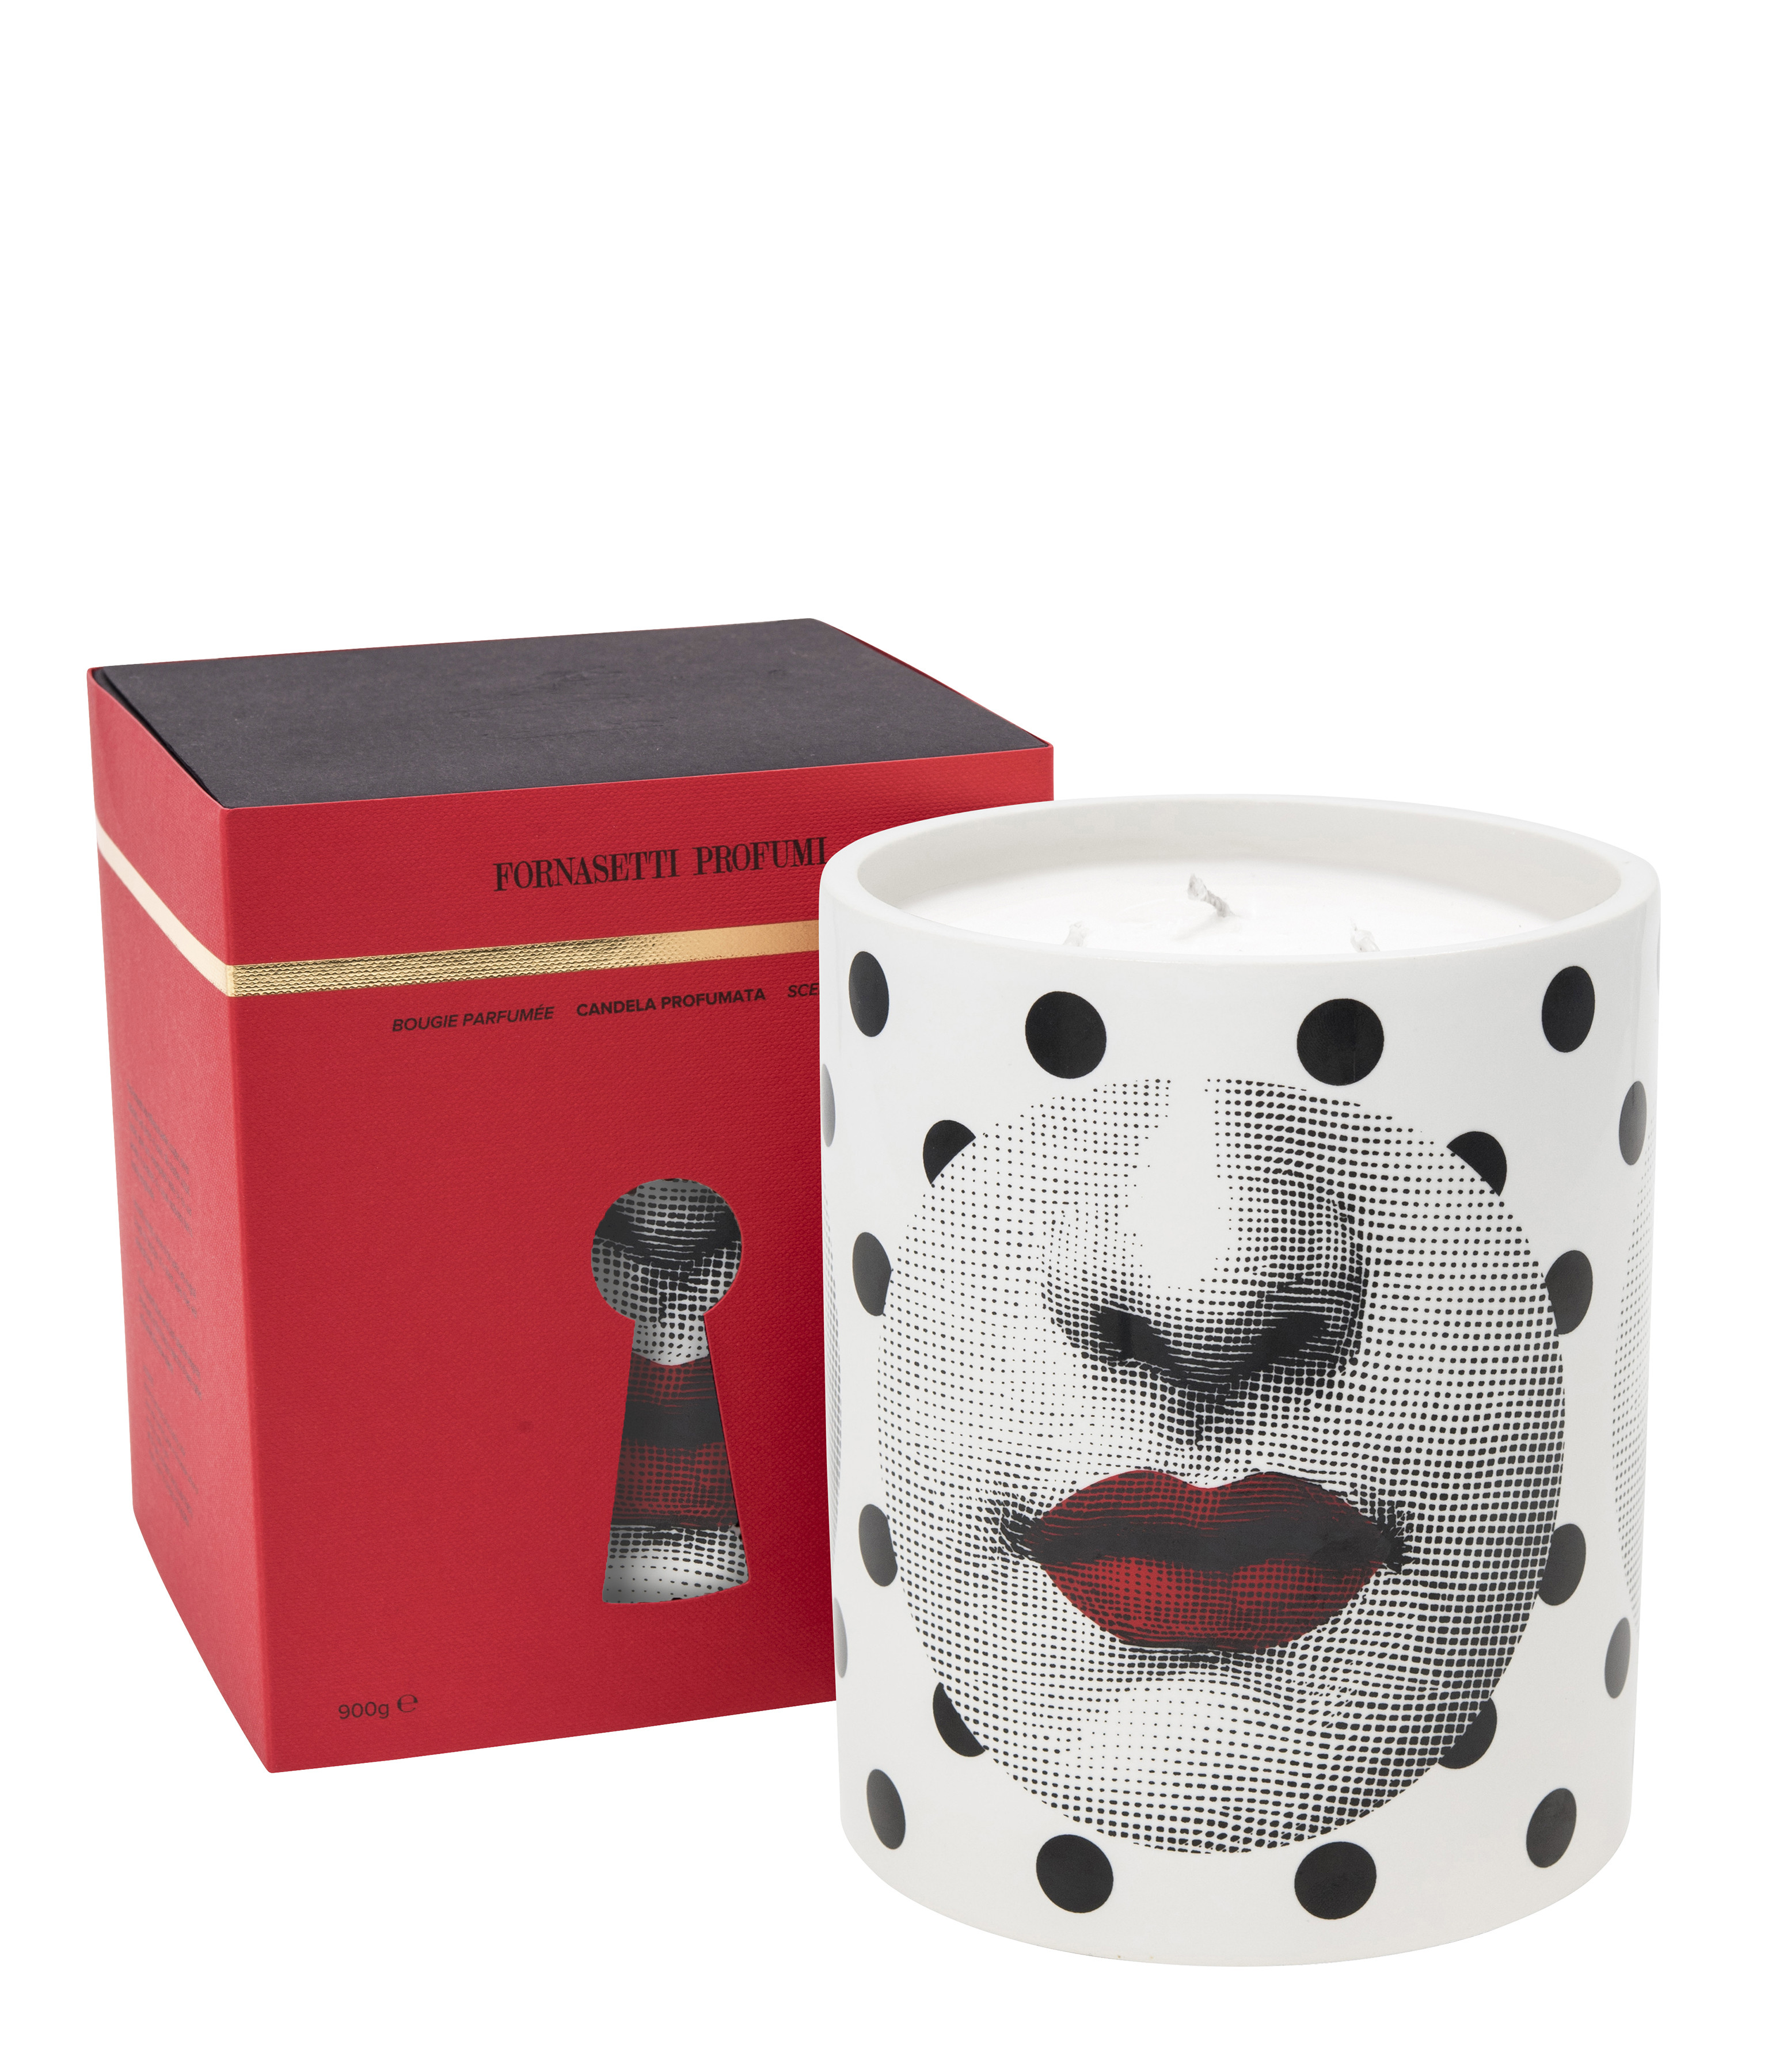 FORNASETTI - Bougie Parfumée 900g Comme Des Forna